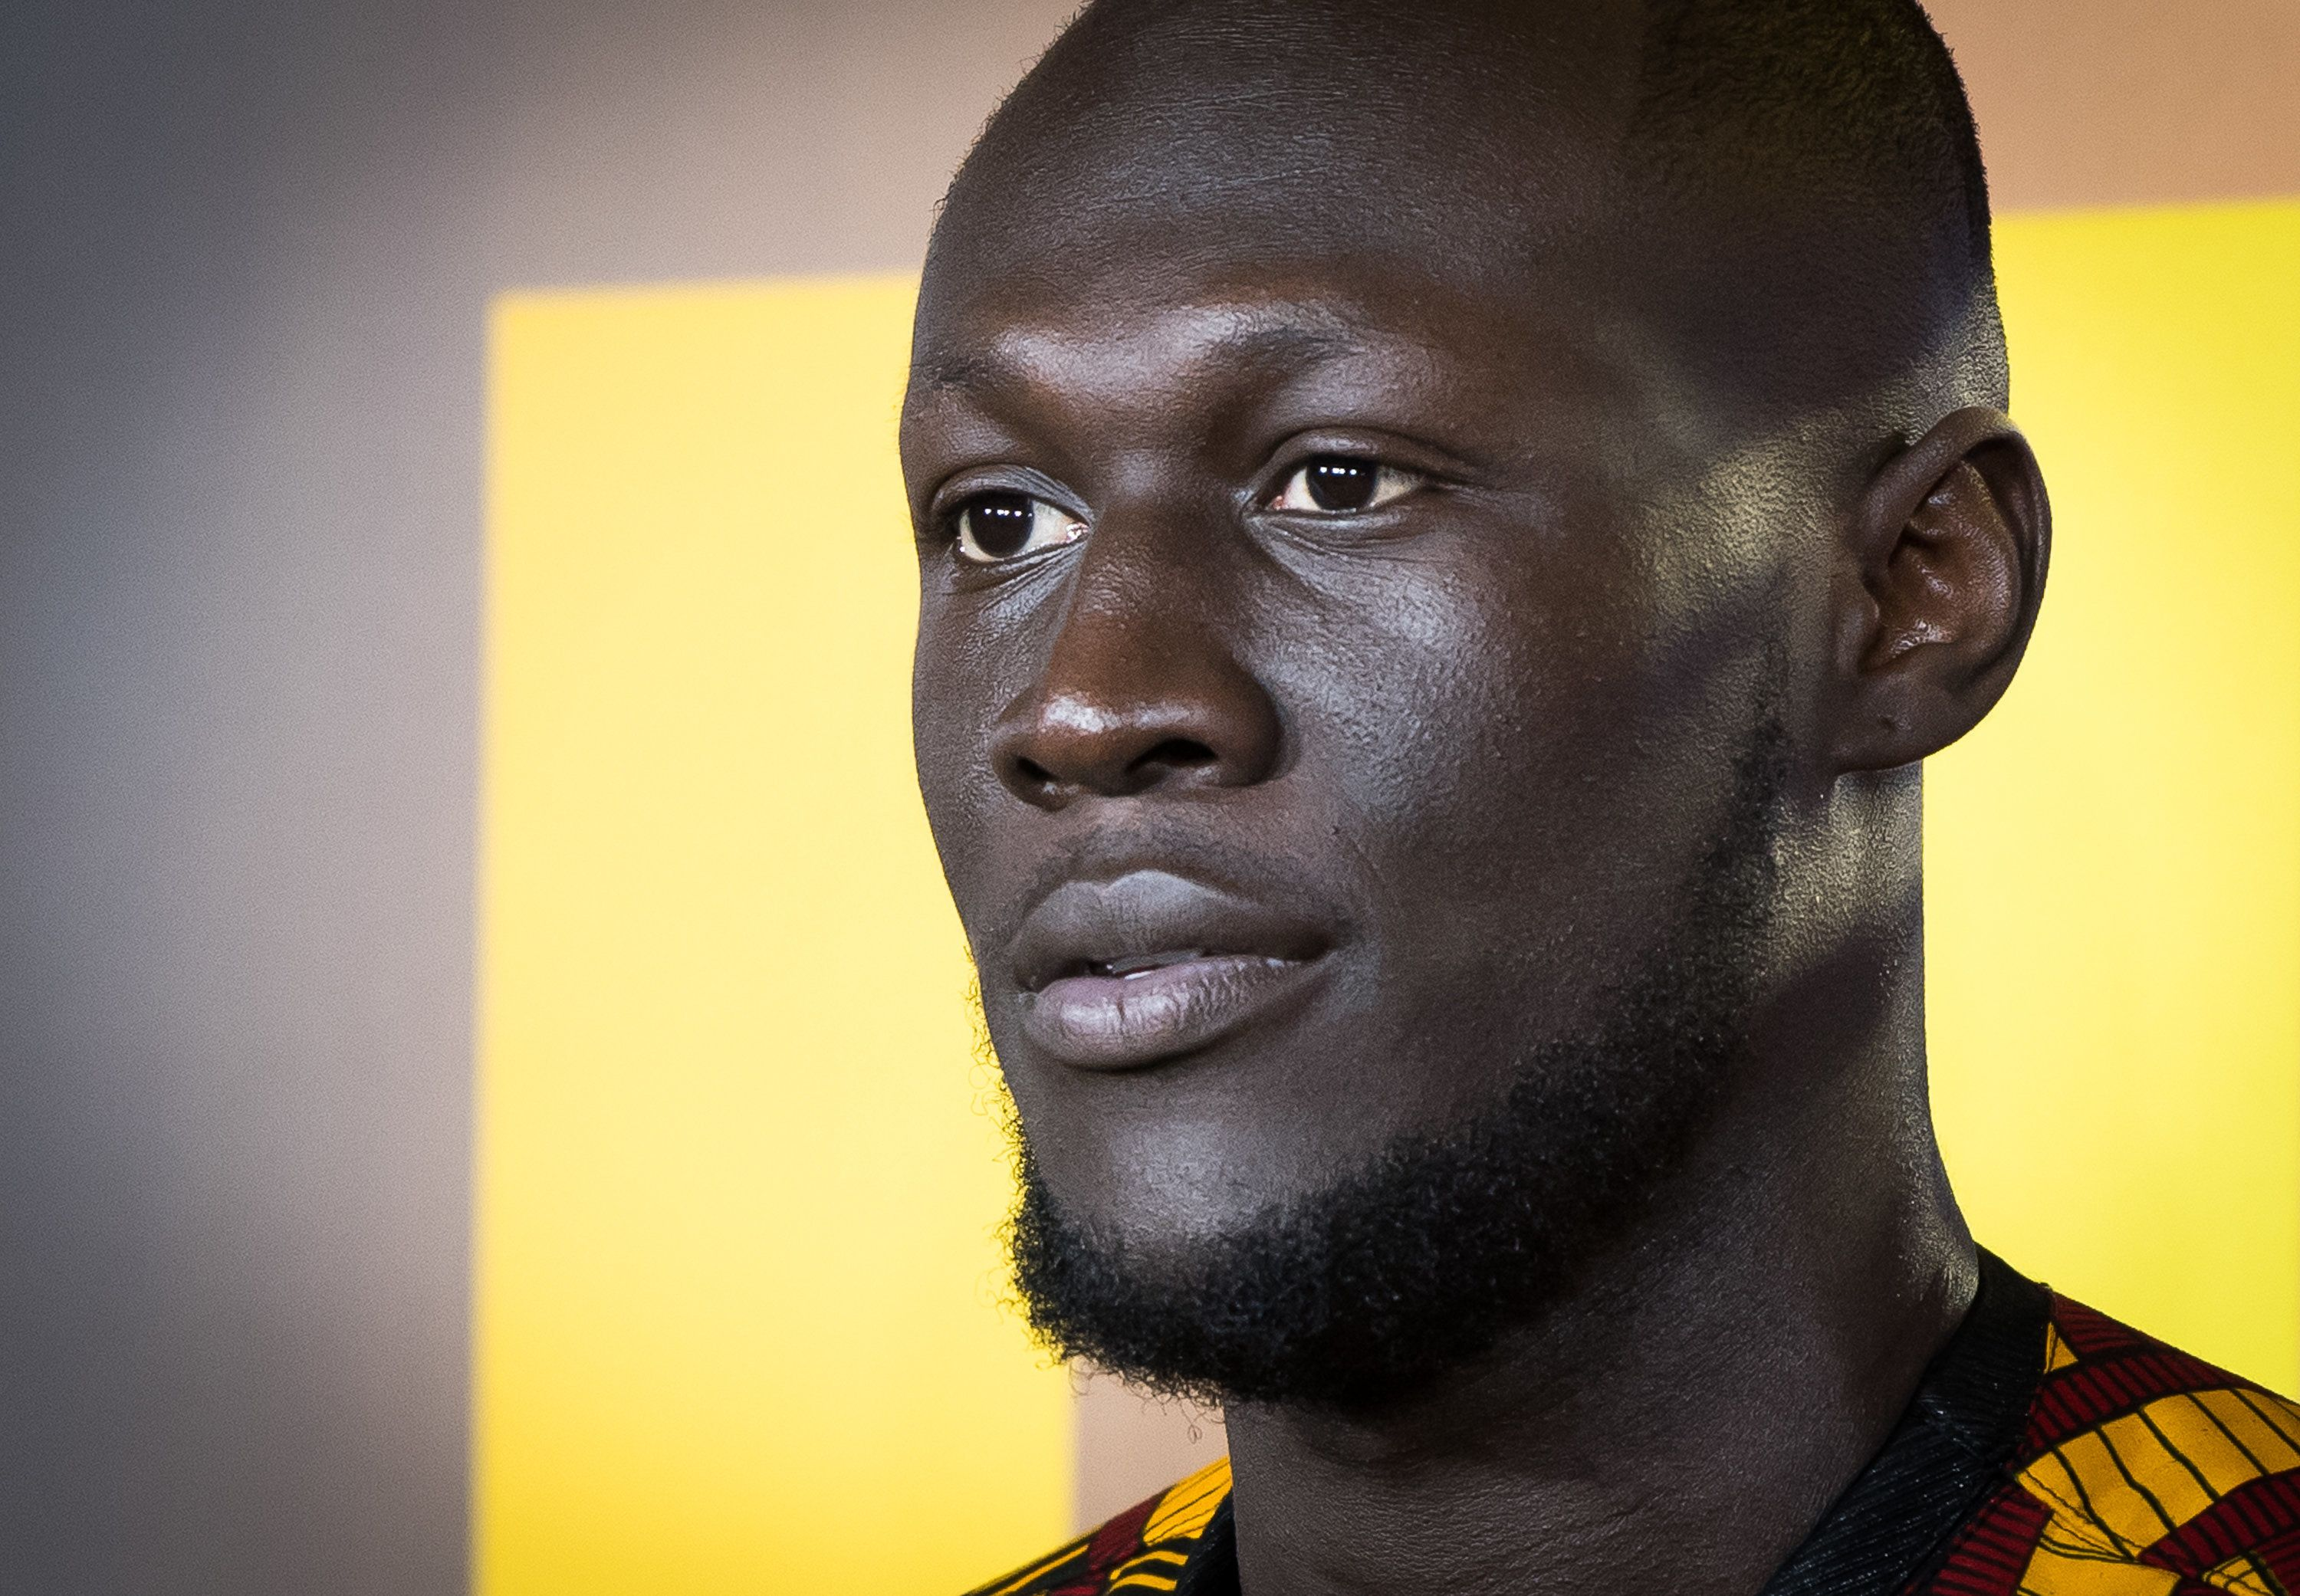 'Theresa May, where's the money for Grenfell?' asks Stormzy at Brit Awards